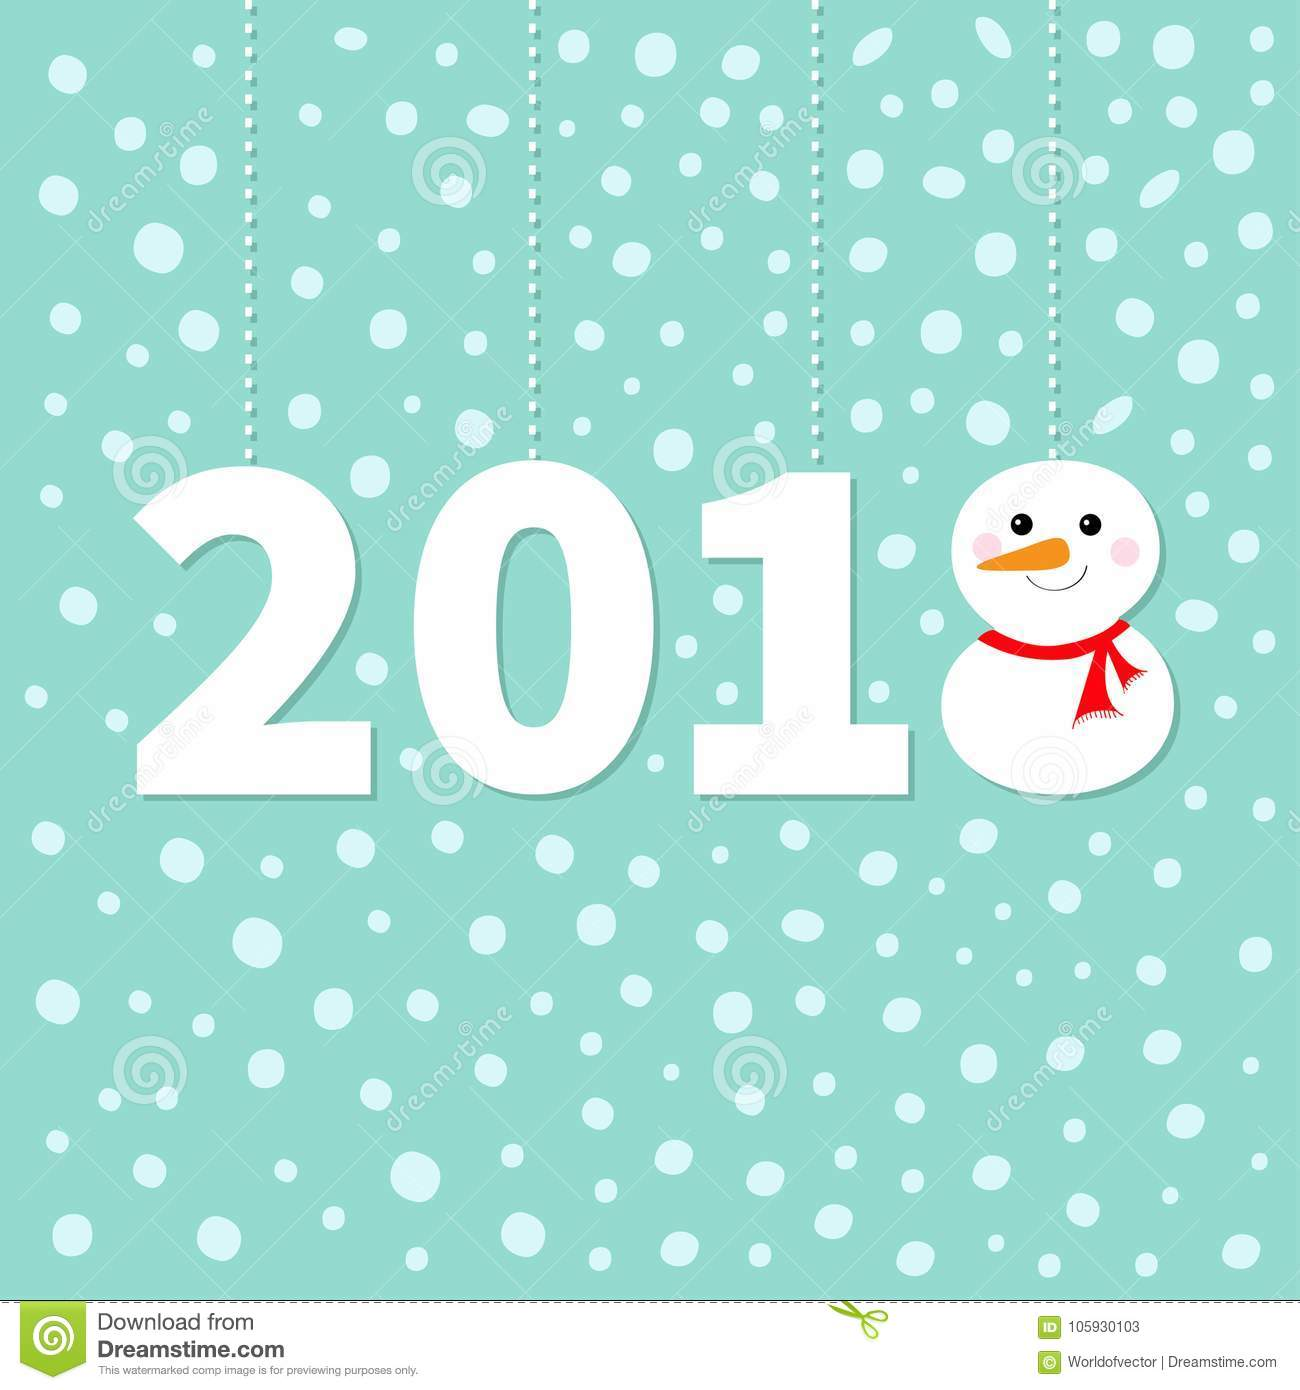 2018 happy new year cute snowman hanging dash line red scarf 2018 happy new year cute snowman hanging dash line red scarf carrot nose template for greeting card calendar presentation kristyandbryce Images